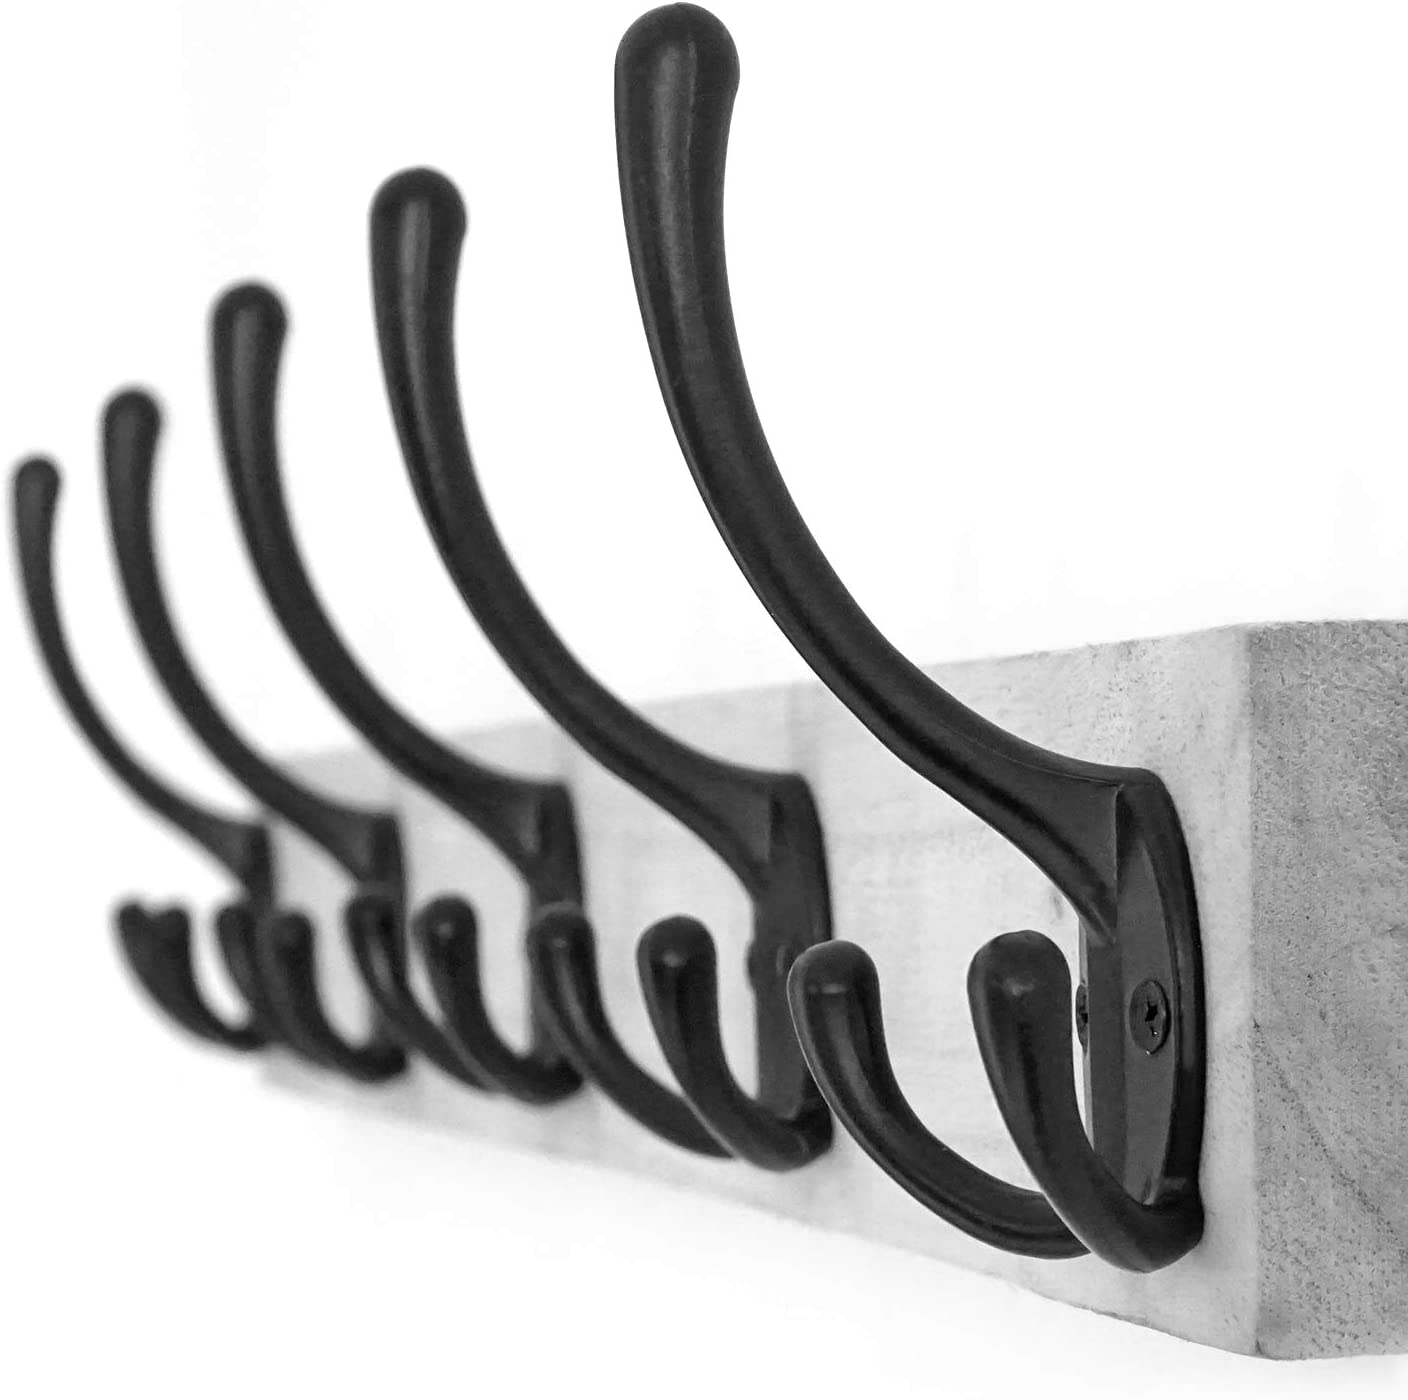 APBFH Wall Mounted Towel Hooks with Three Prongs